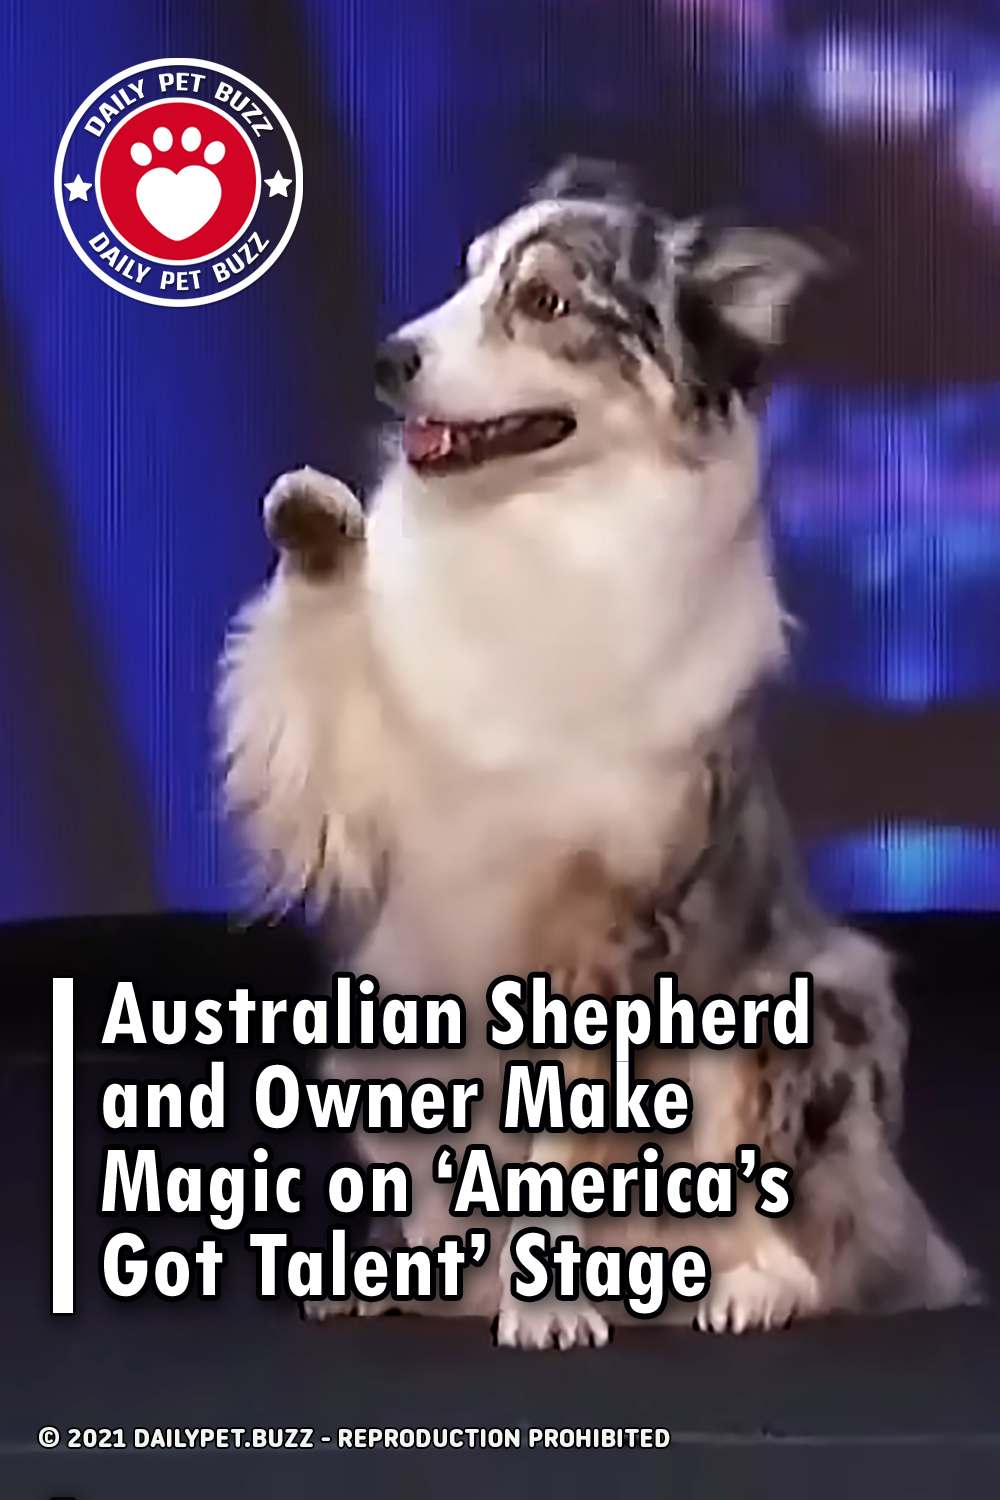 Australian Shepherd and Owner Make Magic on 'America's Got Talent' Stage